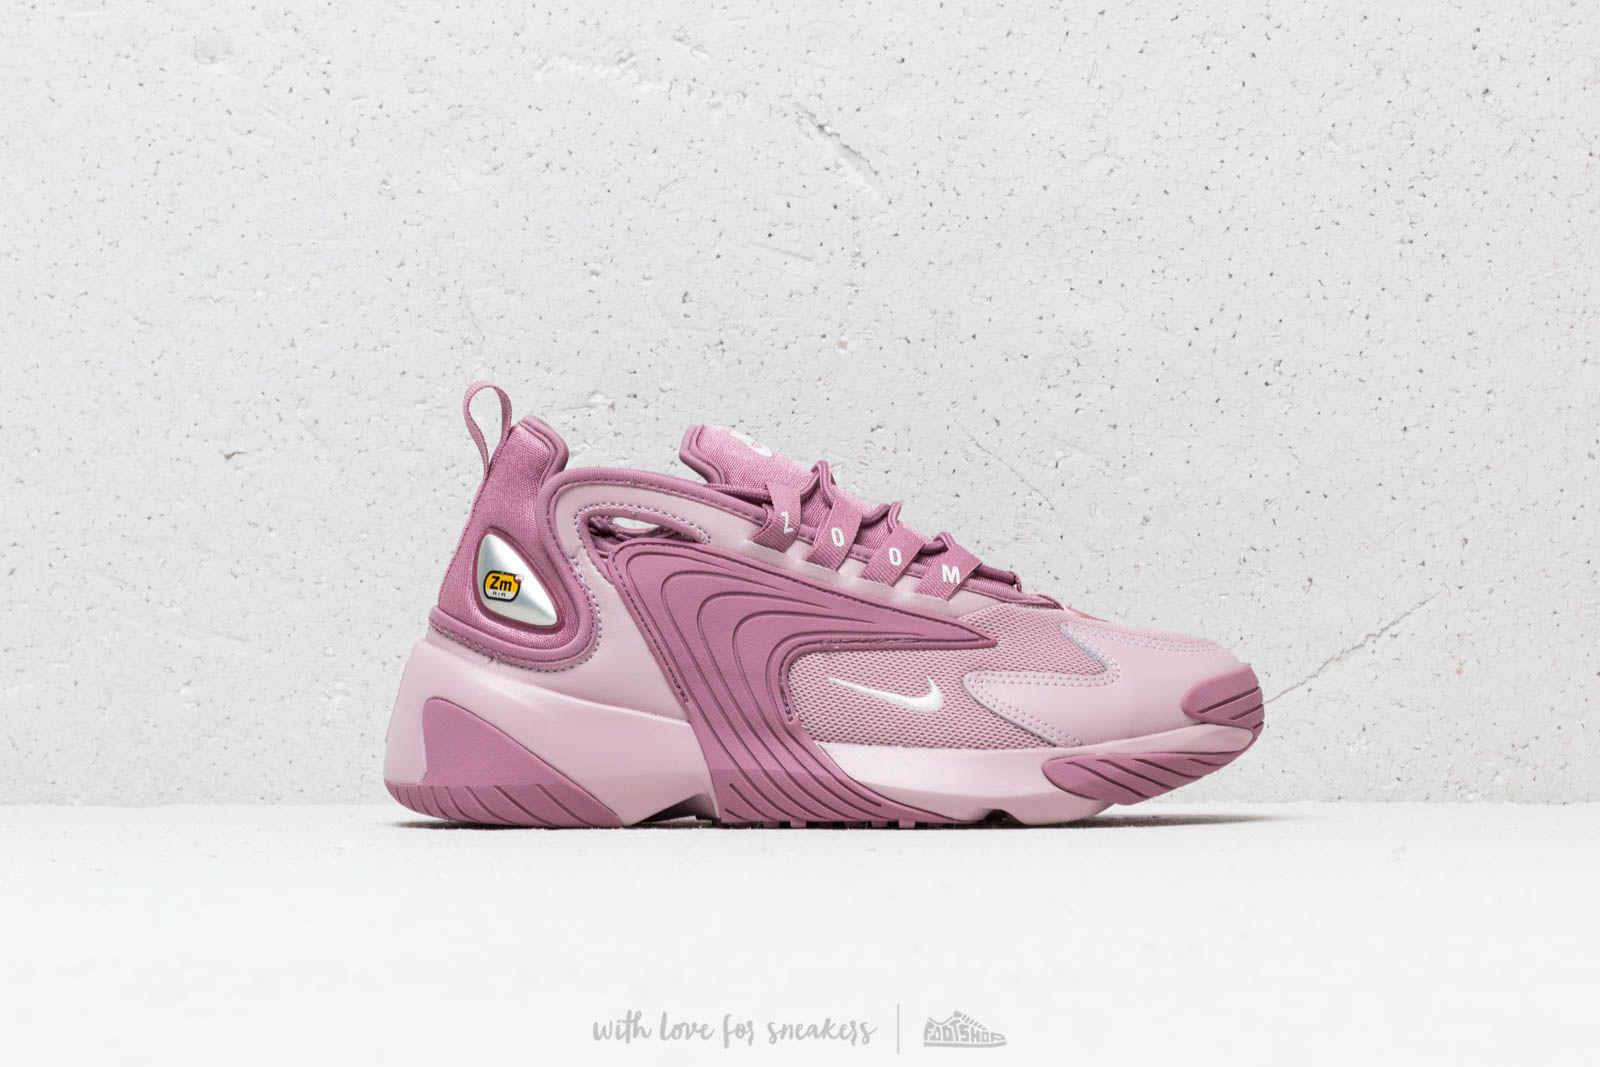 outlet store 749c0 08898 Nike Wmns Zoom 2k Plum Dust  Pale Pink-plum Chalk in Pink - Lyst